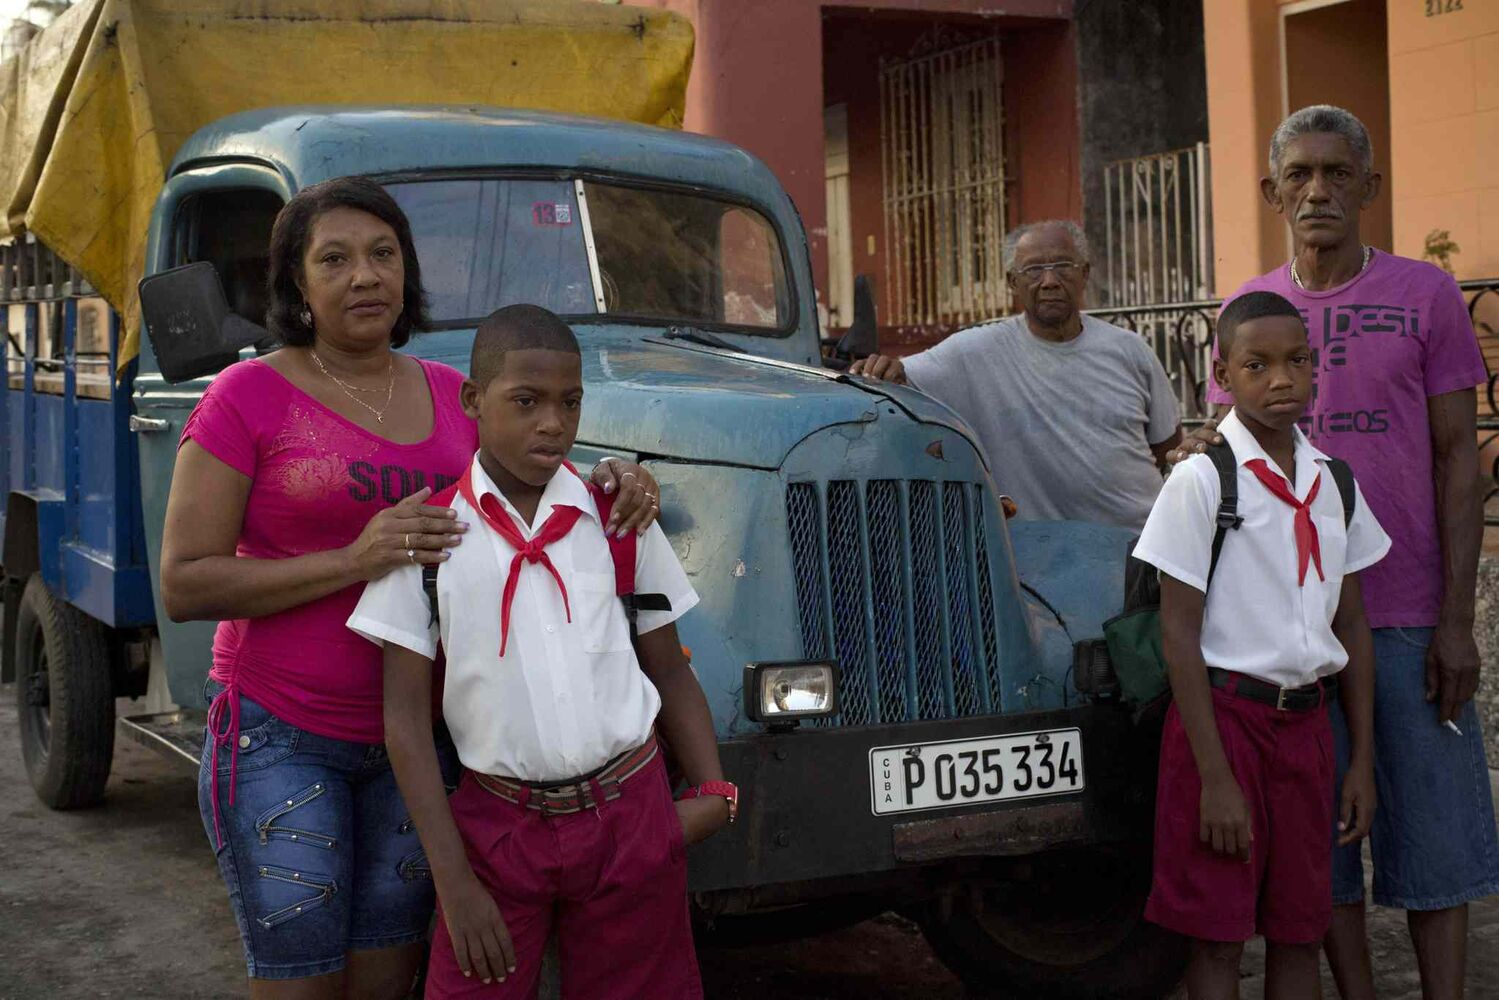 Eleven-year-old twin brothers Arian and Adrian Cueto pose for portraits in their school uniforms alongside their parents and grandfather as they gather around their family's truck in Havana, Cuba.  (Ramon Espinosa / The Associated Press)